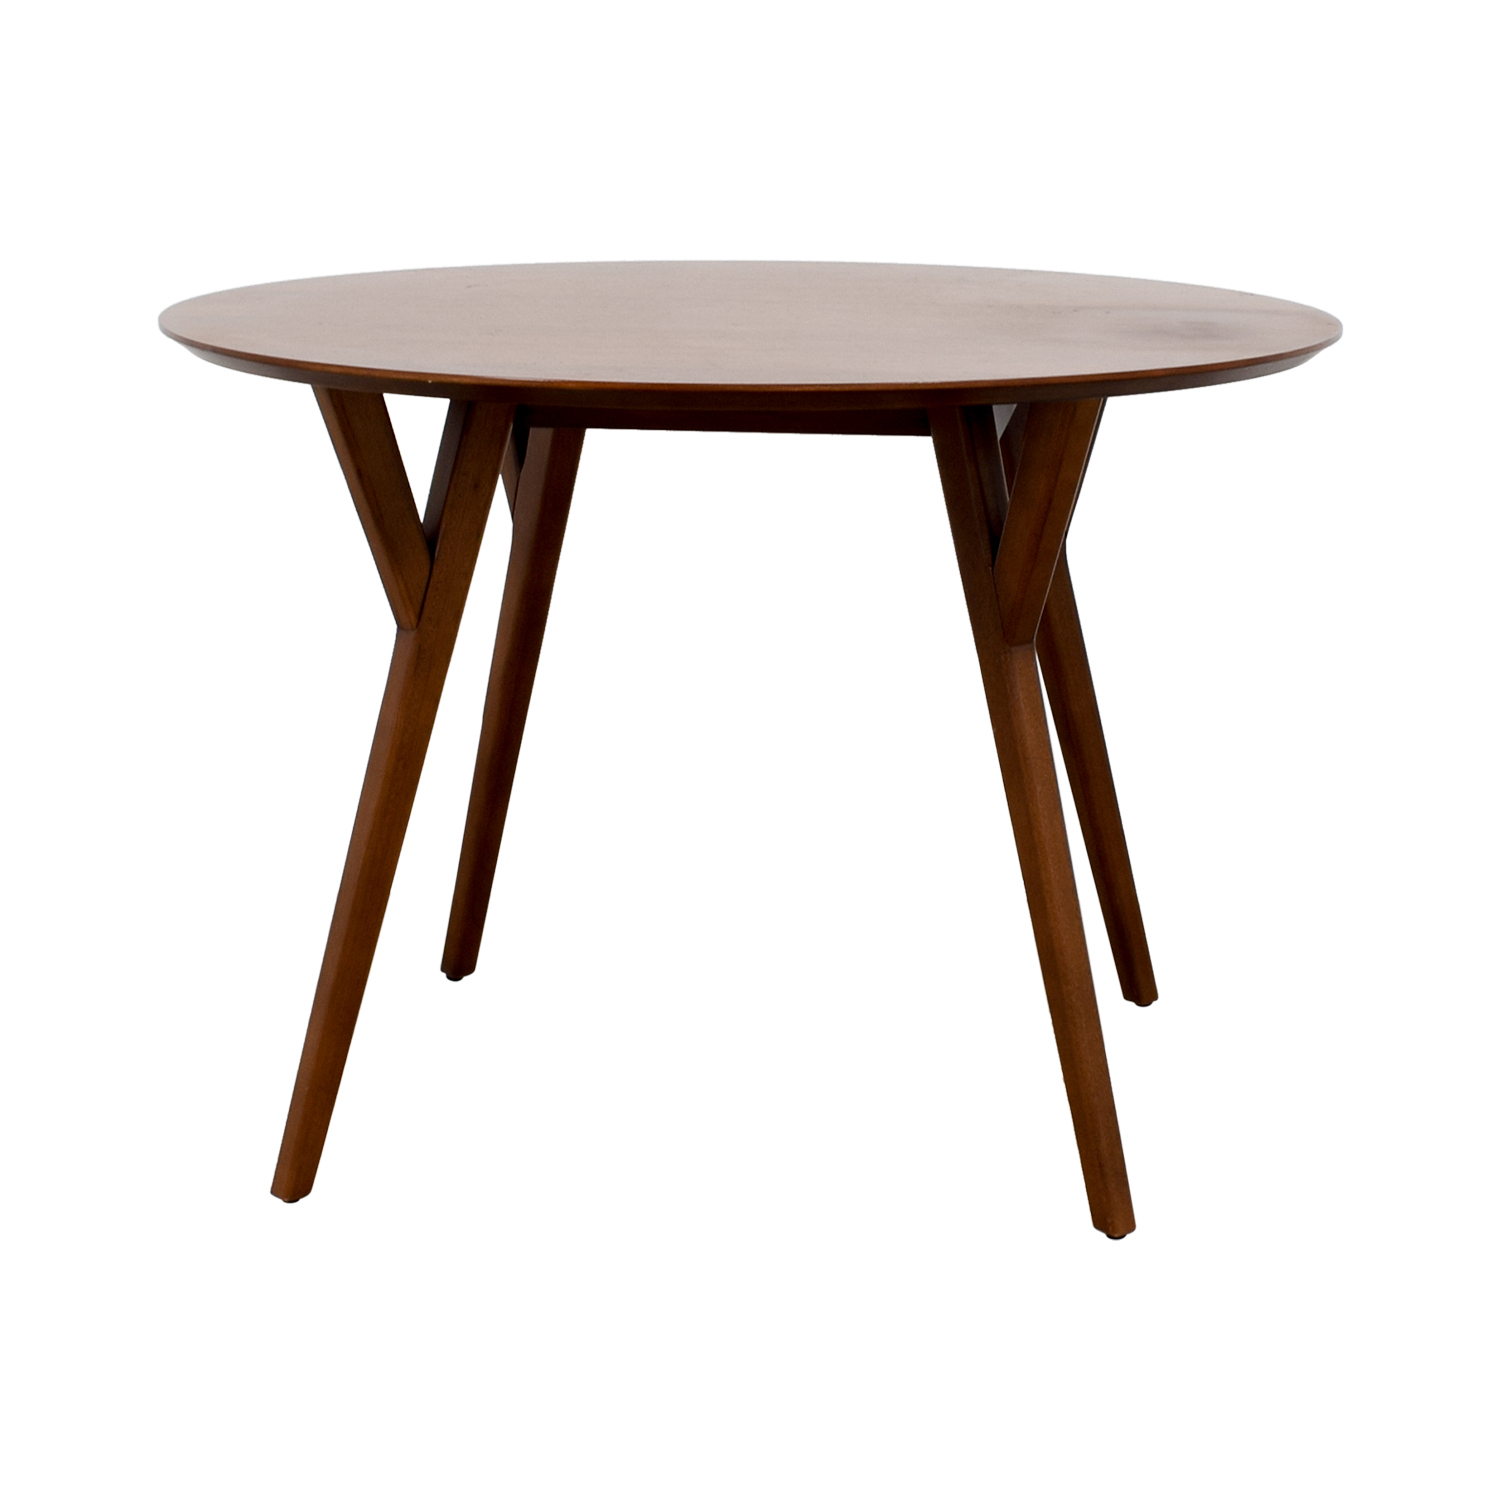 79% Off – West Elm West Elm Round Wood Dining Table / Tables Regarding 2017 West Dining Tables (View 6 of 25)